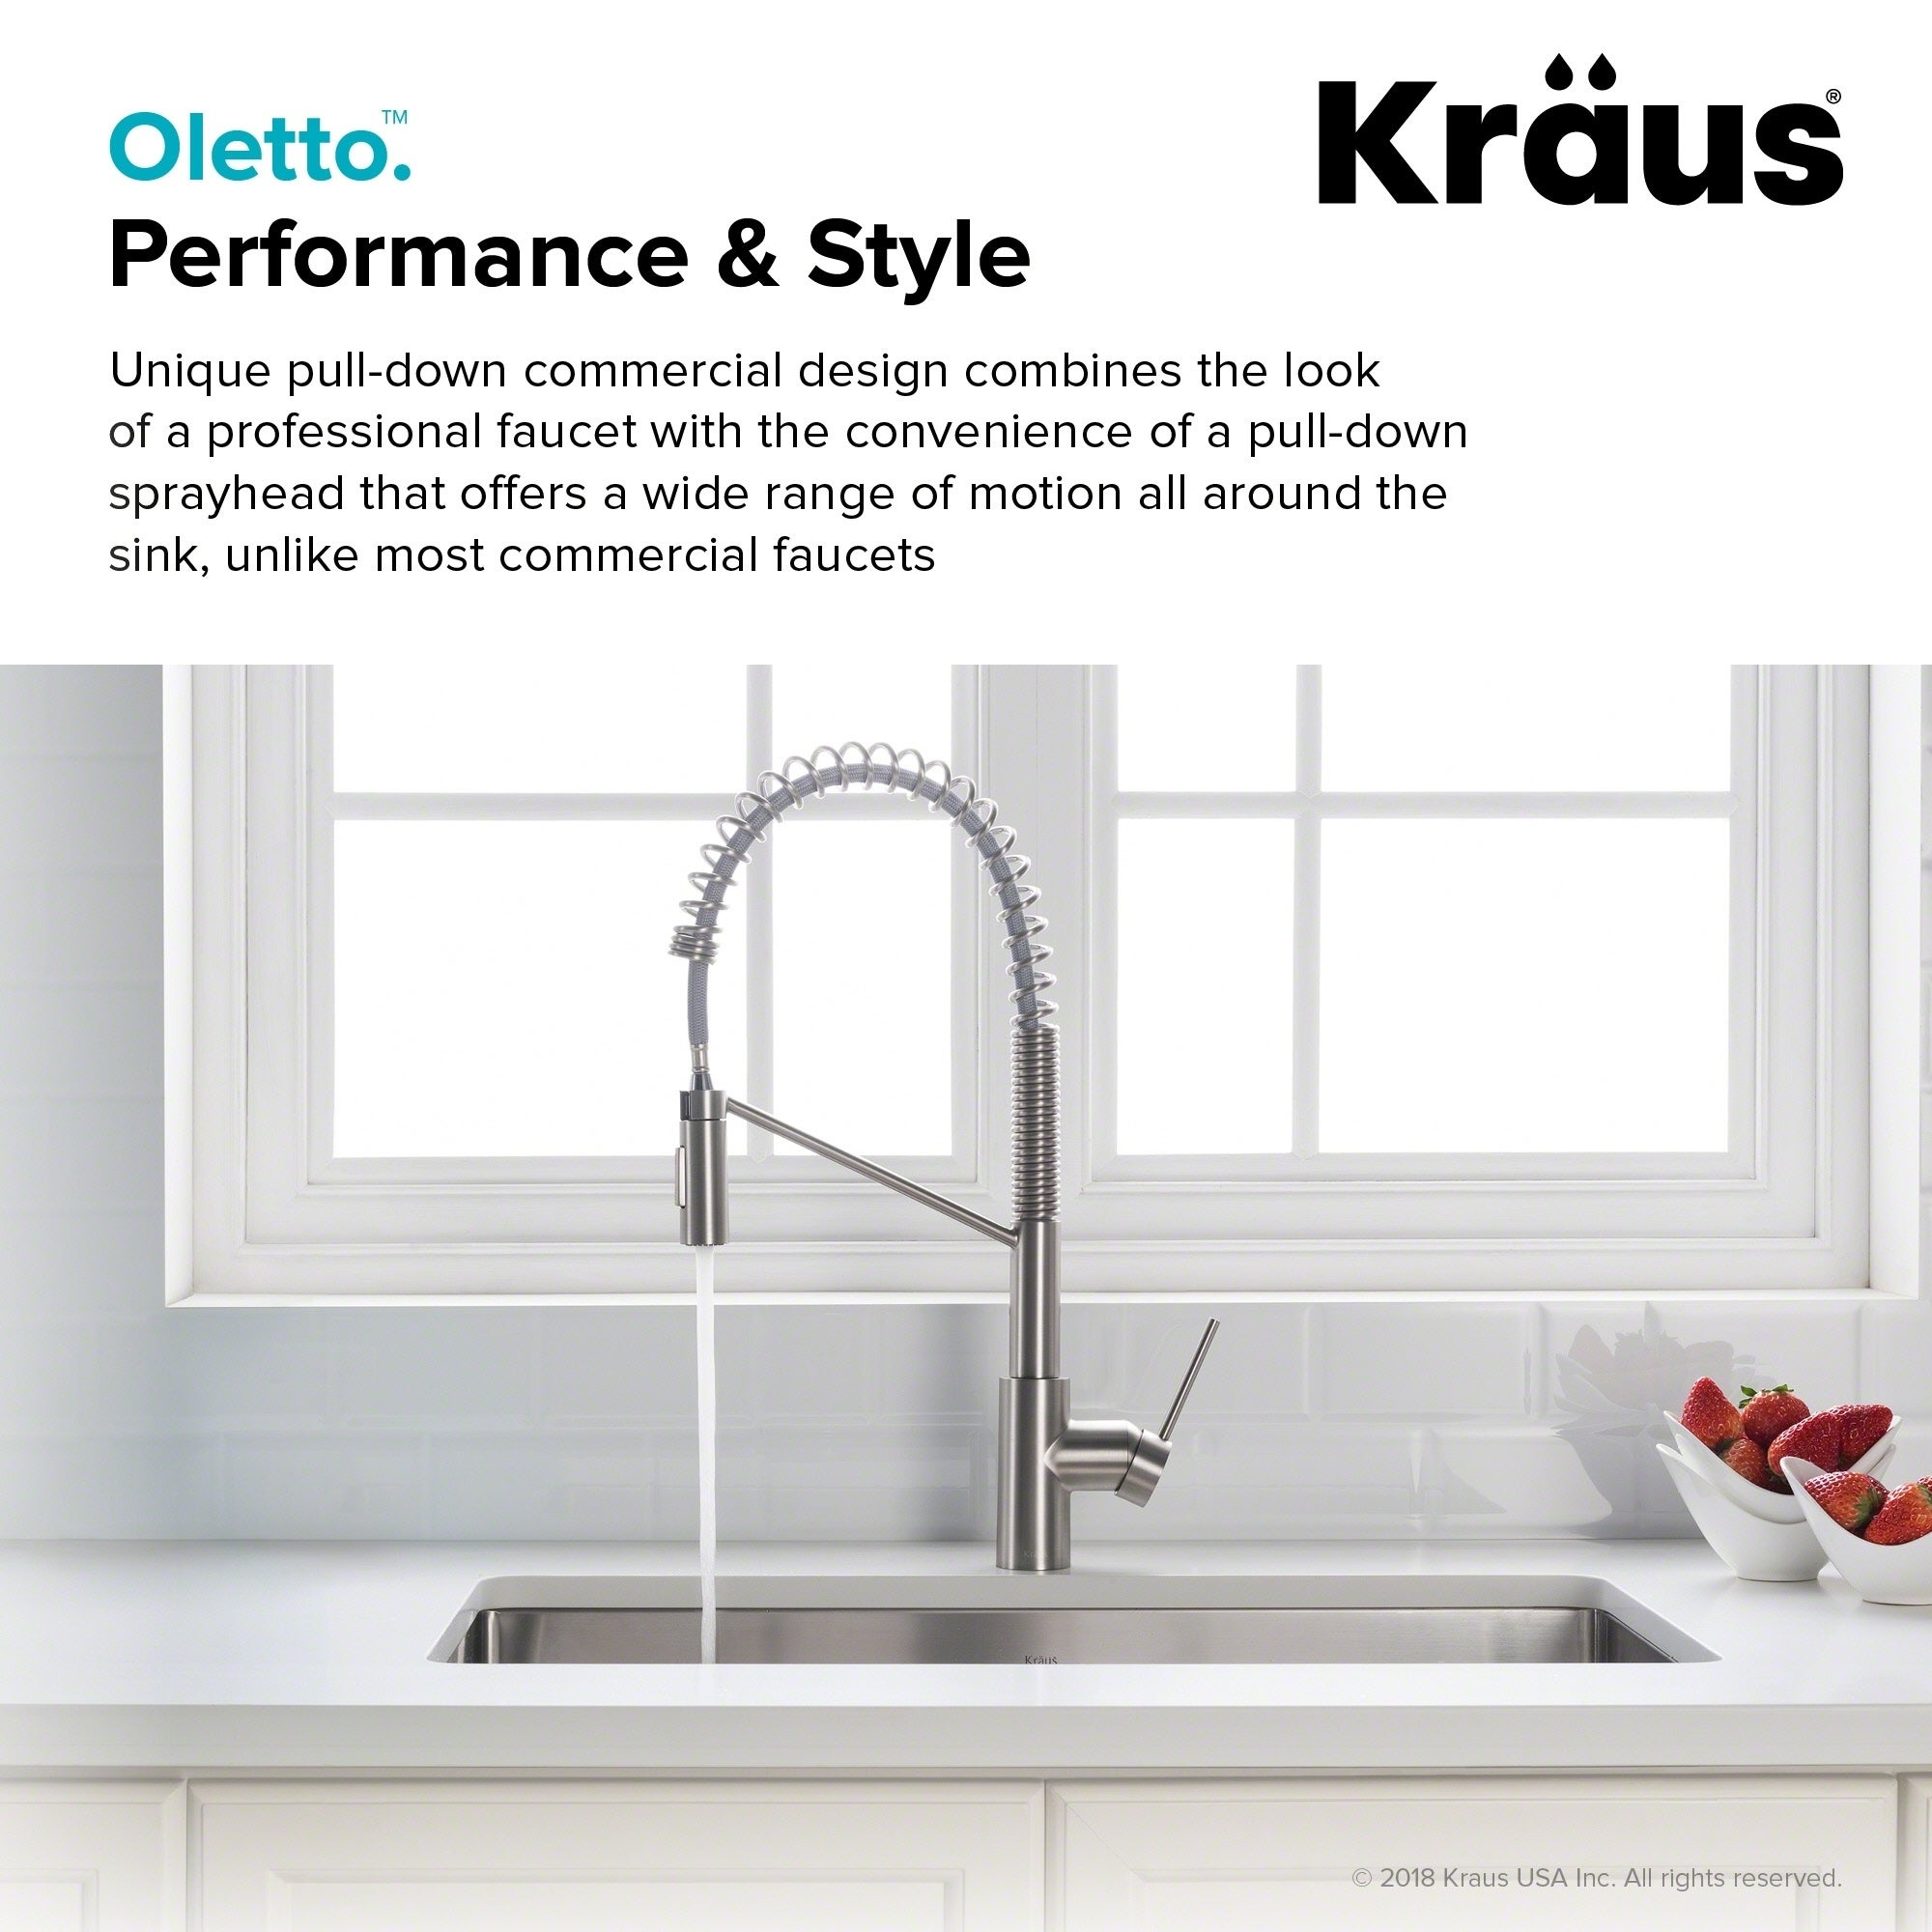 Ordinaire Shop Kraus KPF 2631 Oletto 1 Handle 2 Function Sprayhead Commercial Pull  Down Kitchen Faucet   Free Shipping Today   Overstock.com   20359695